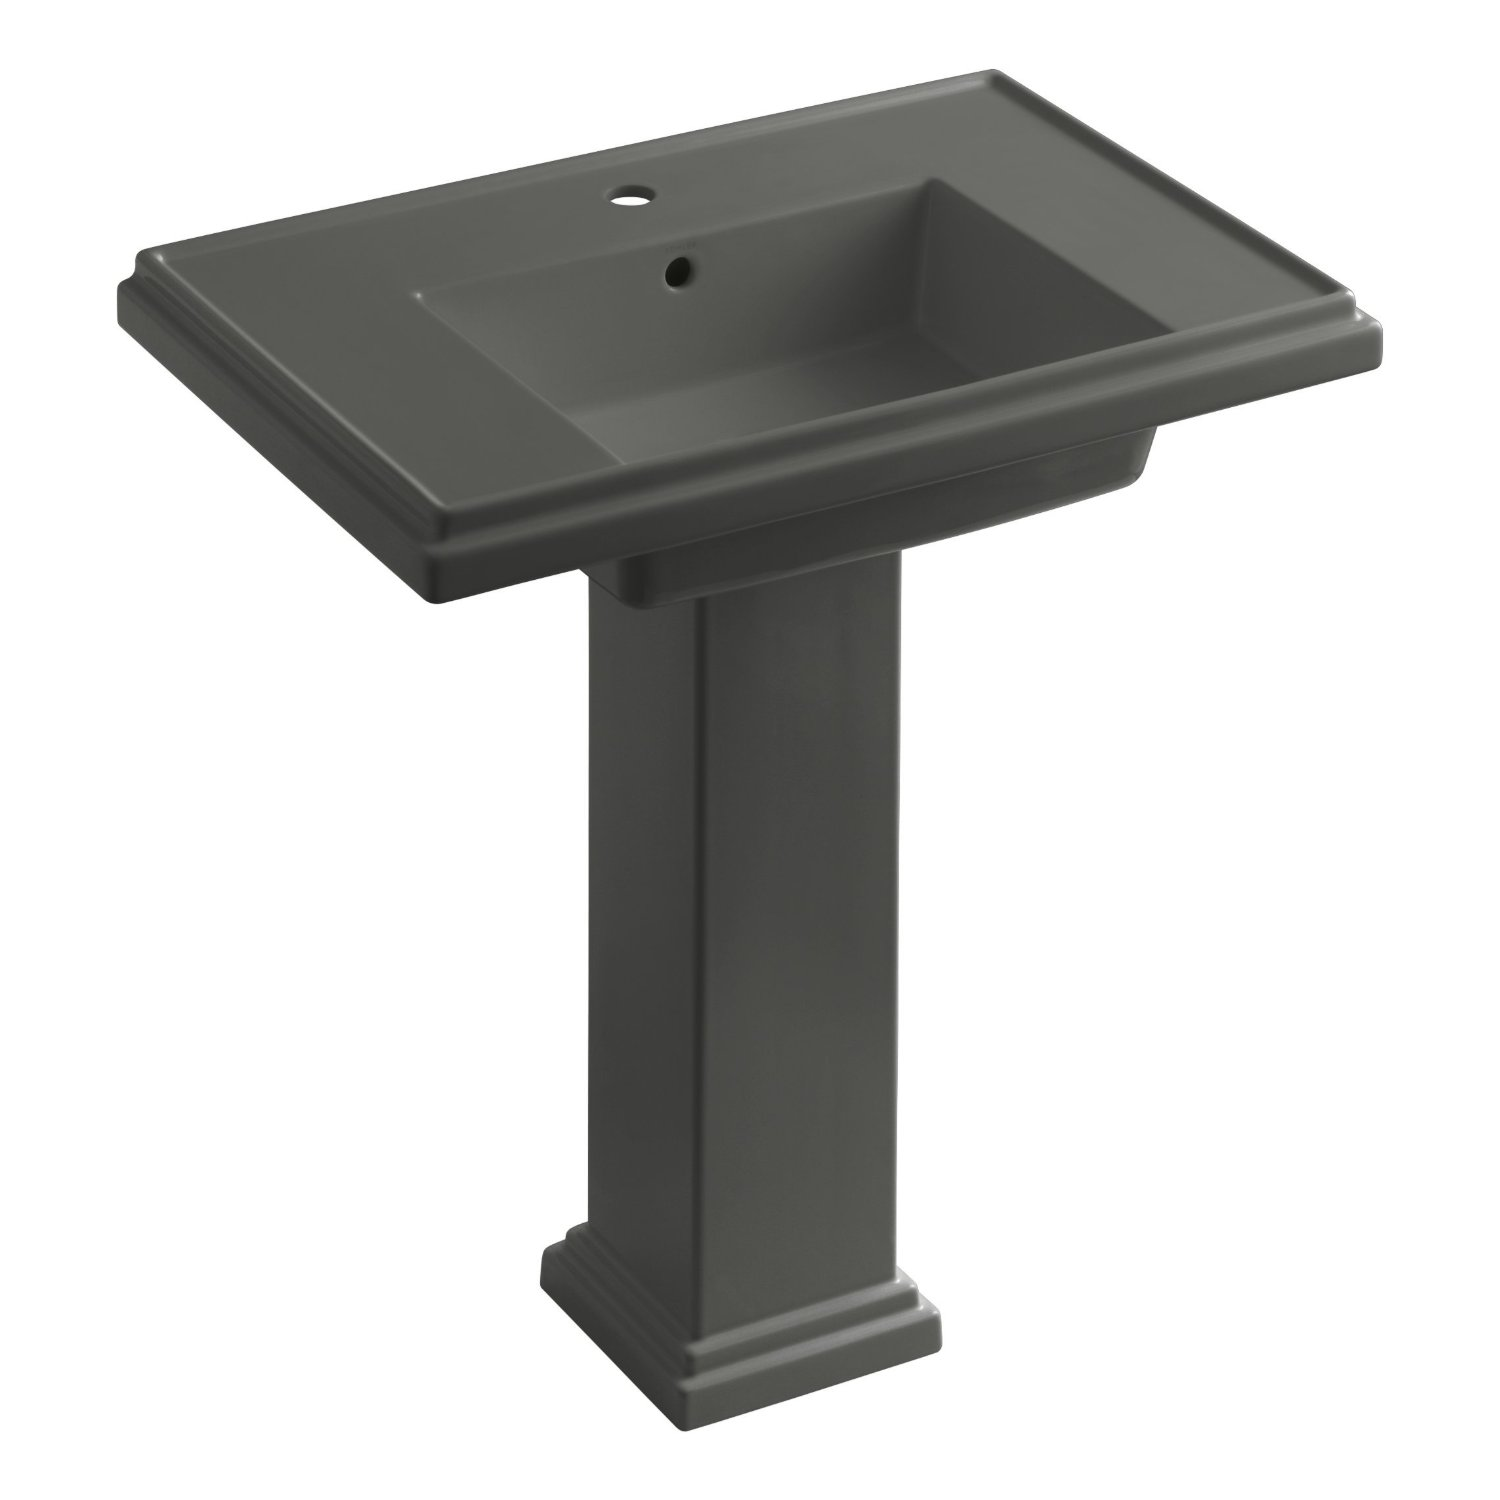 Single Hole Pedestal Sink : ... Sink with Single-Hole Faucet Drilling, White - Pedestal Sinks - Amazon